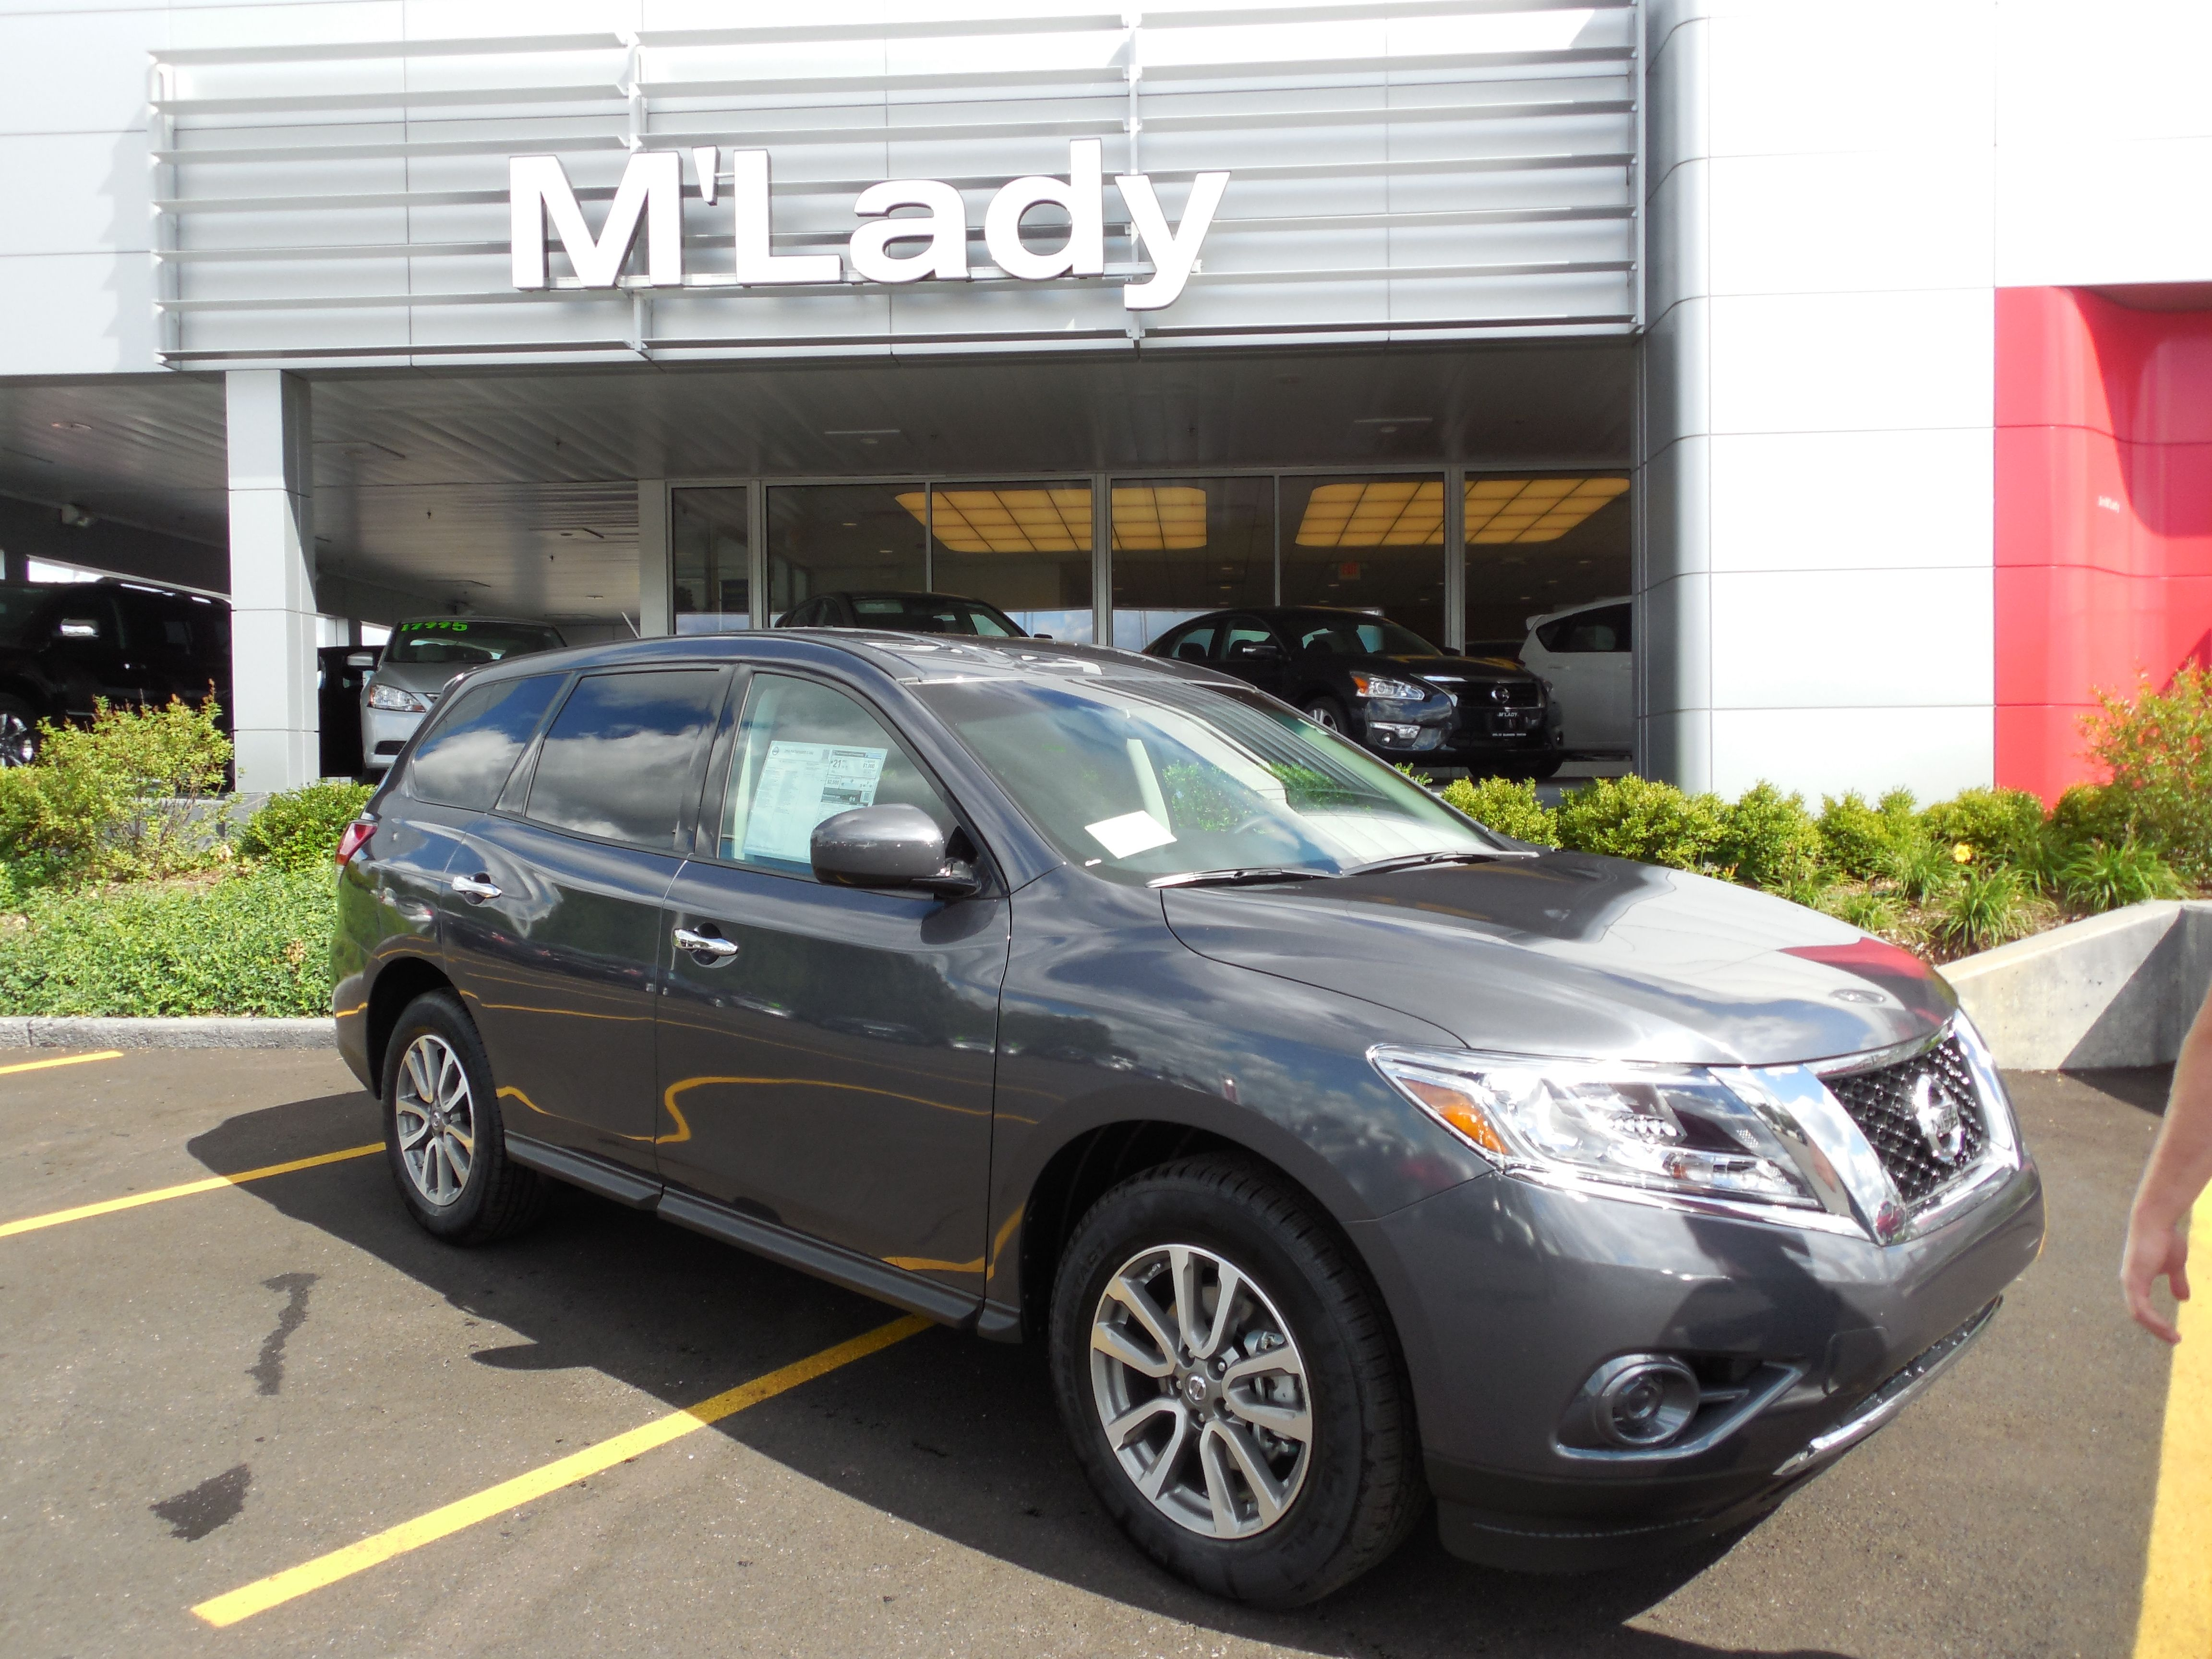 2014 Nissan Pathfinder M'Lady Nissan 5656 Northwest Highway, Crystal